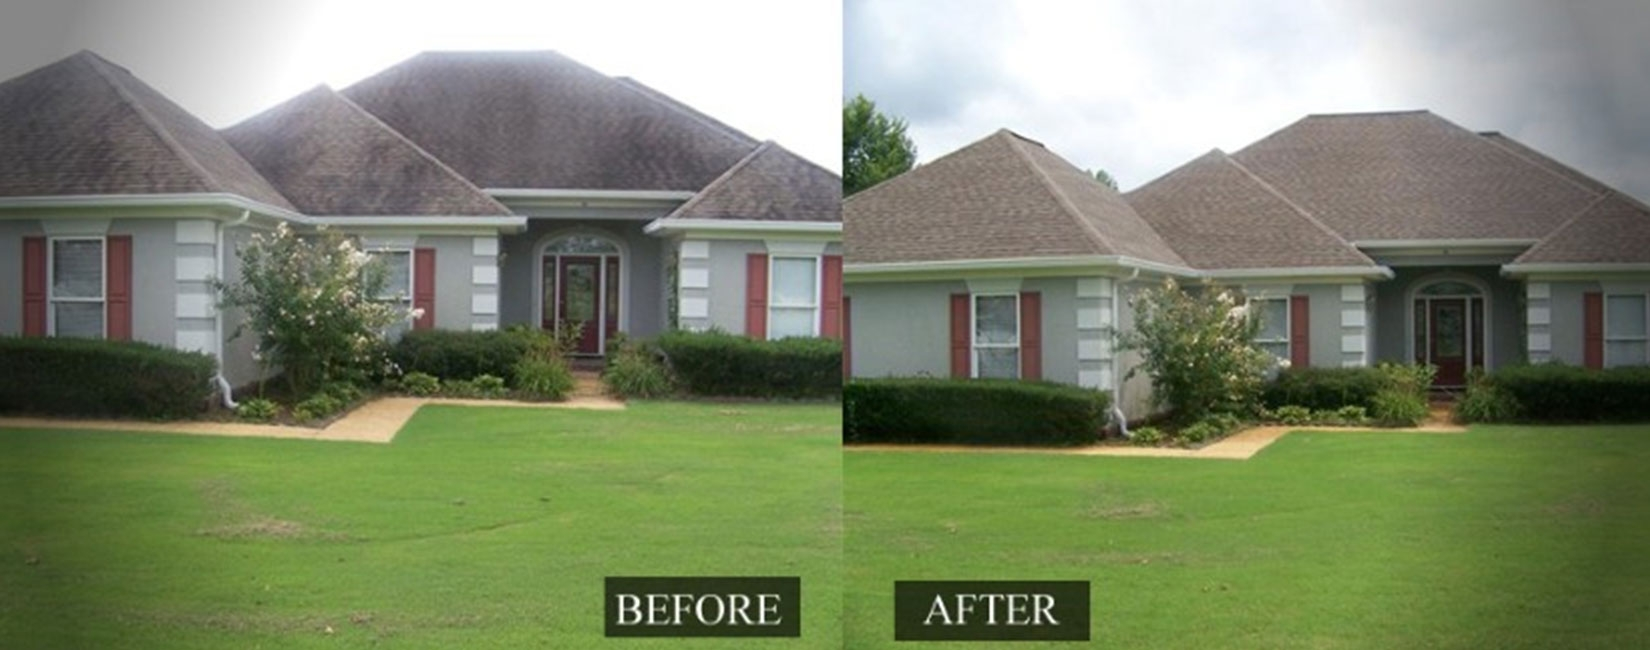 Affordable Texas Roofing (@affordabletexasroofing) Cover Image